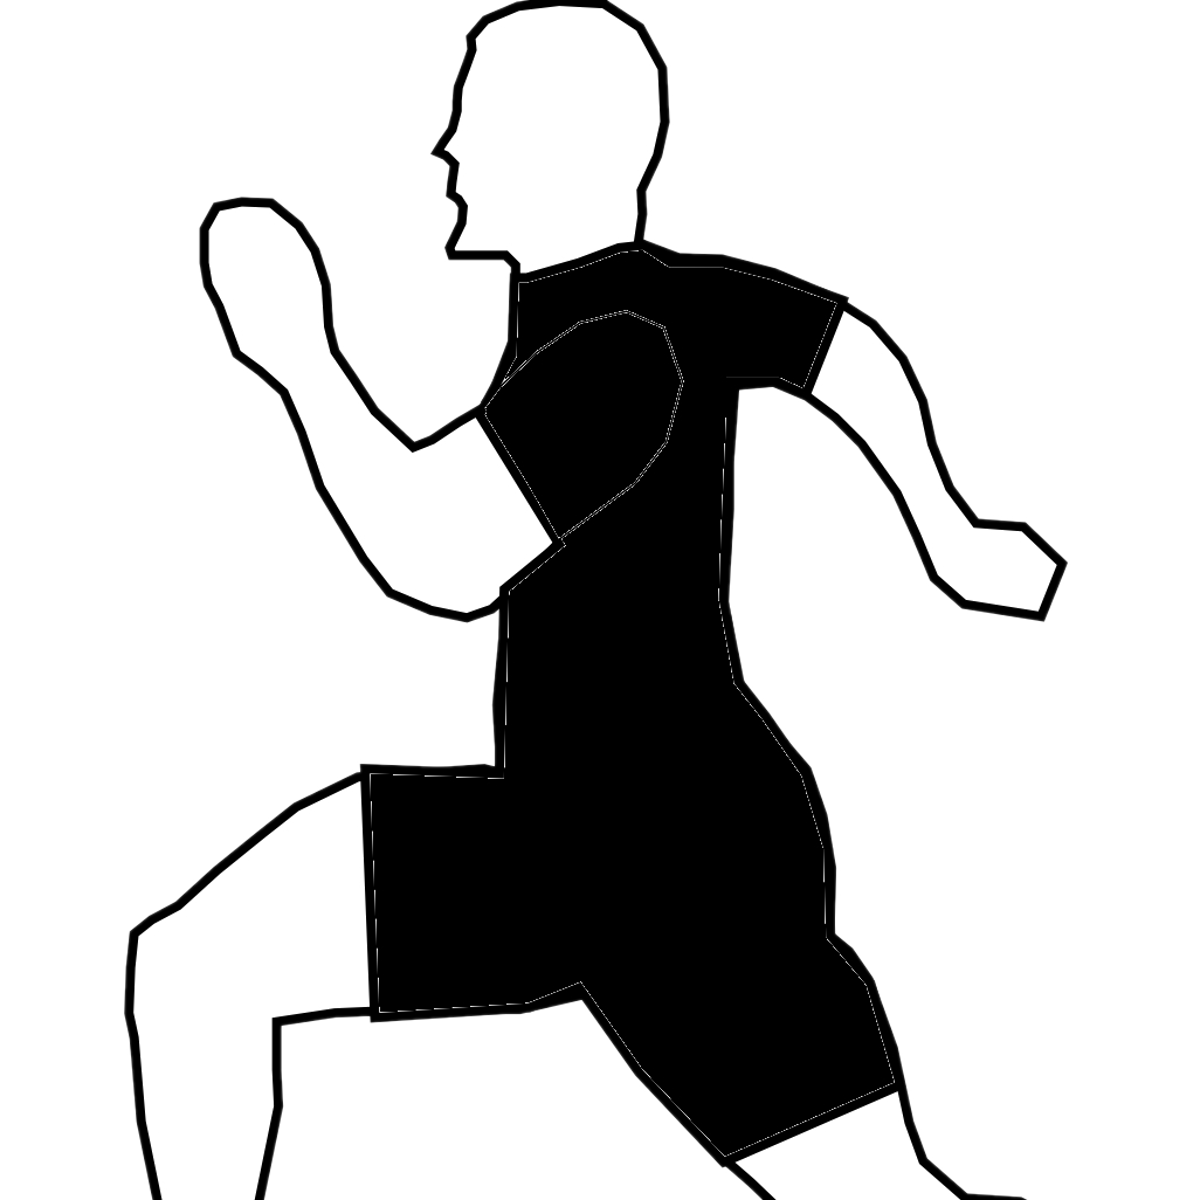 Abstracted image of man running.